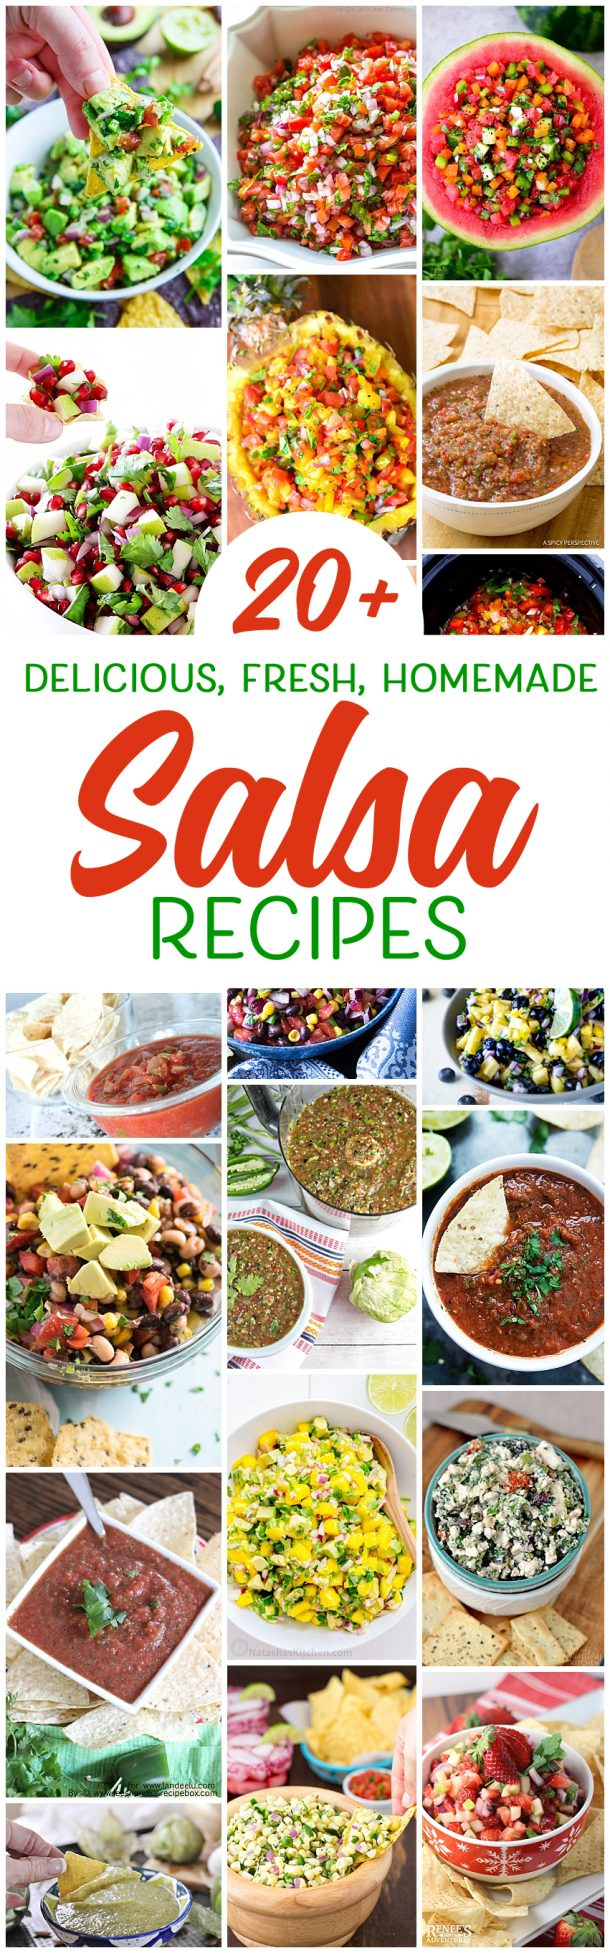 Get out the chips because I want to make each salsa recipe on this list! Chips and salsa are my favorite snack of all time!